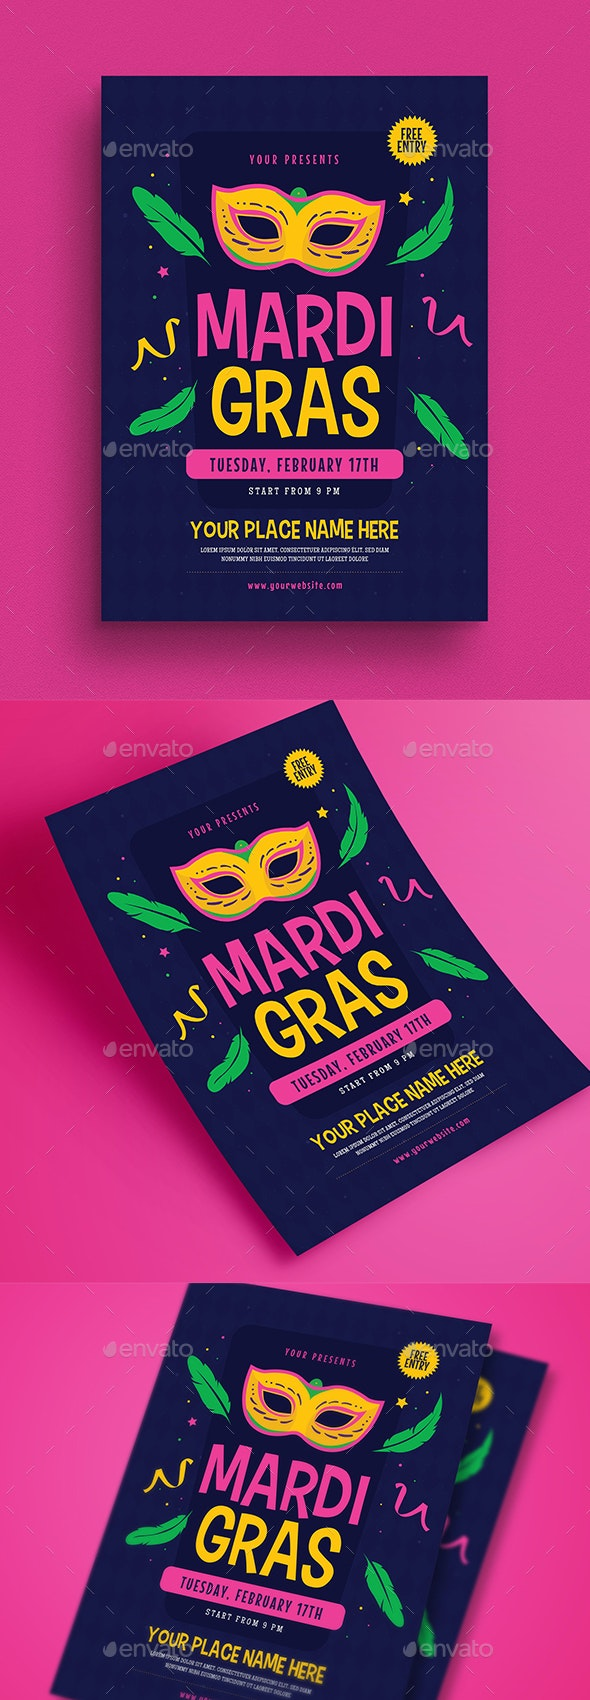 Mardigras Event Flyer - Events Flyers